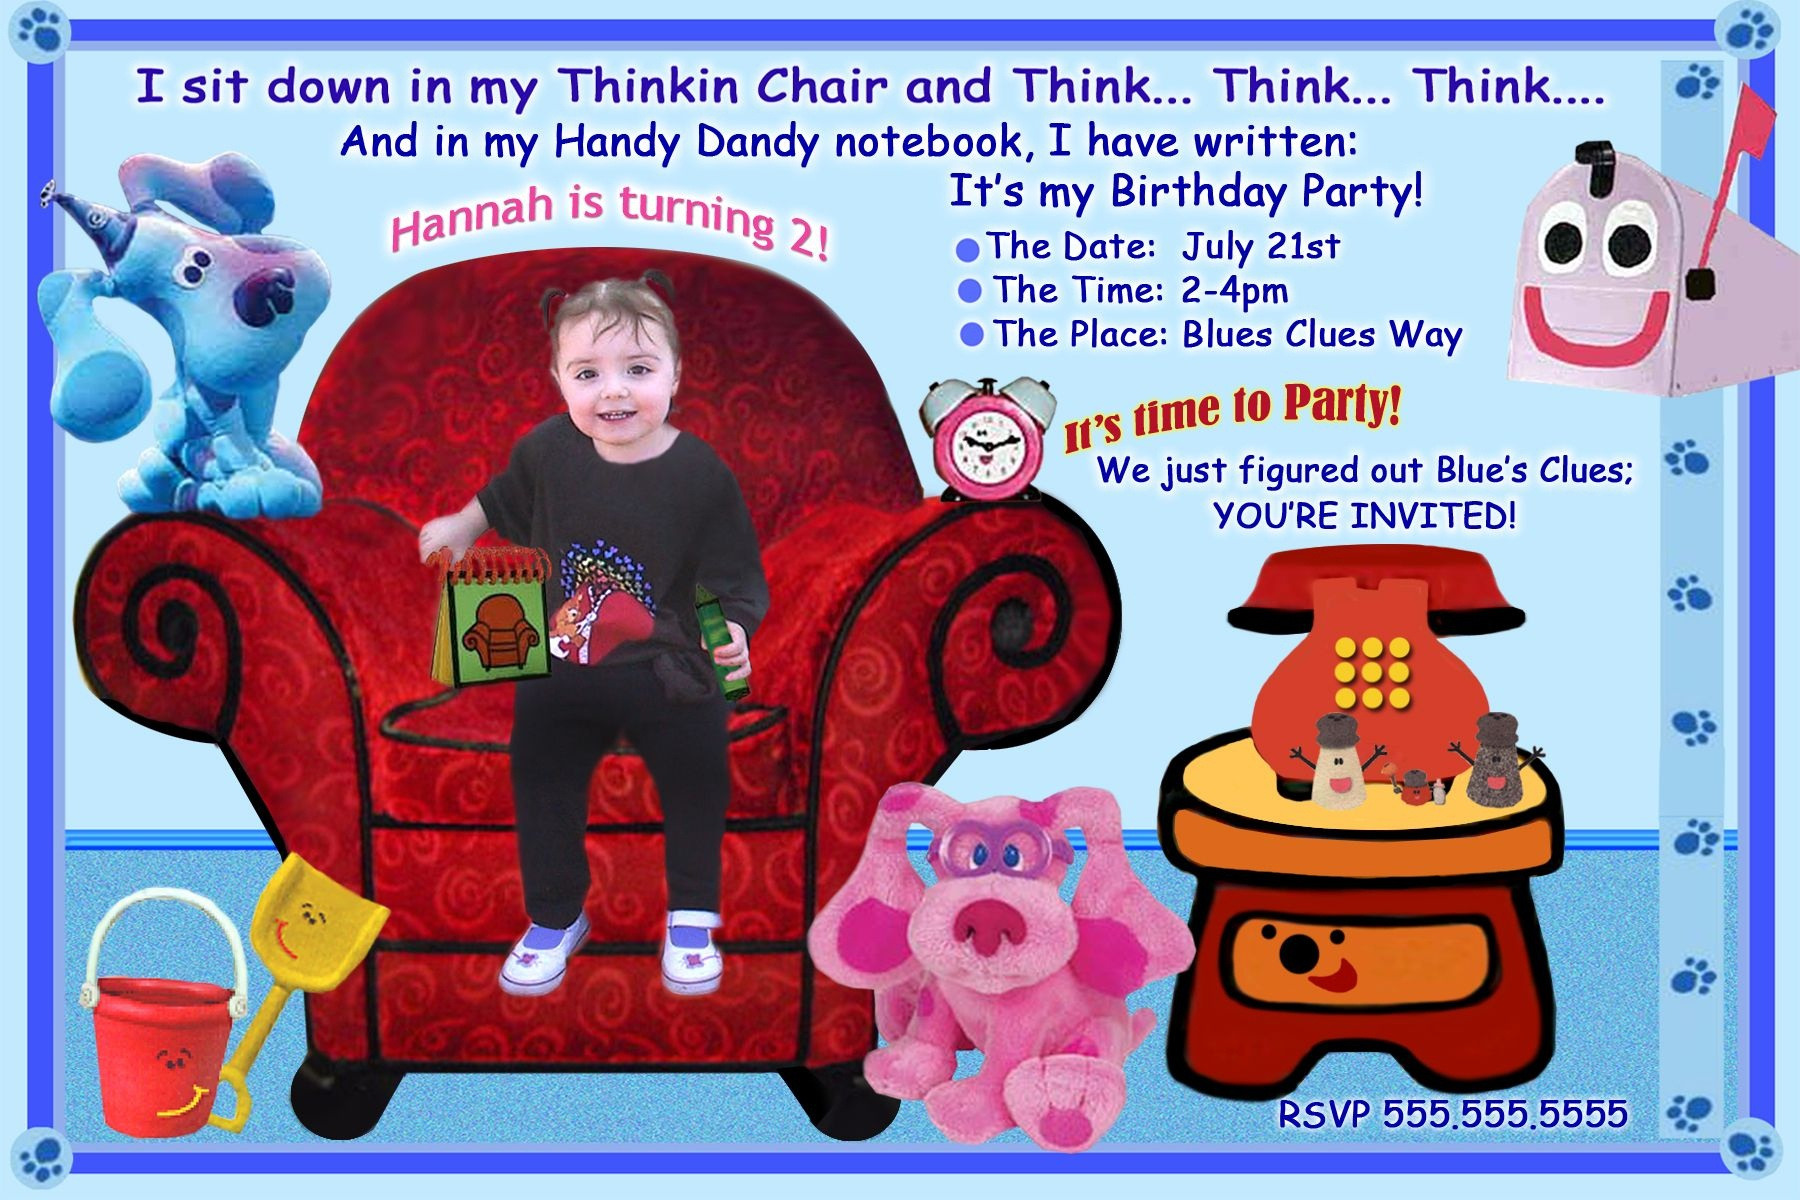 Free Blues Clues Birthday Invitations Ideas | Bagvania Invitation - Blue's Clues Invitations Free Printable